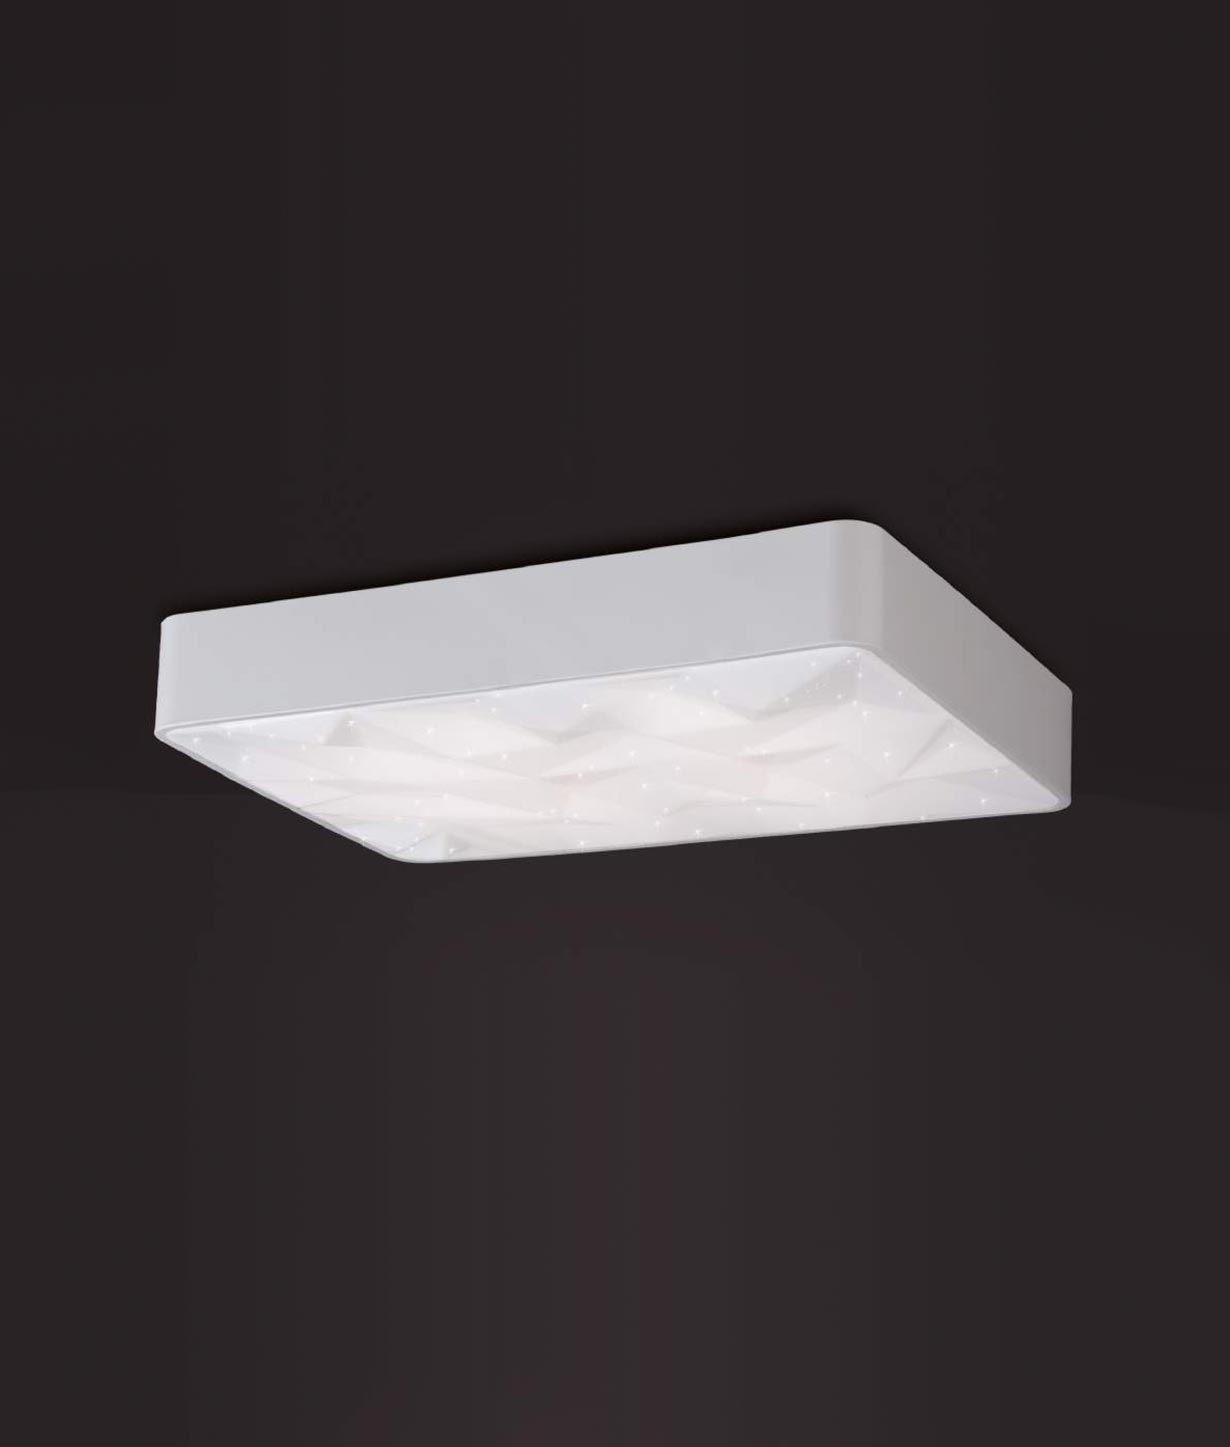 Luminaria rectangular dimmable ROMBOS LED